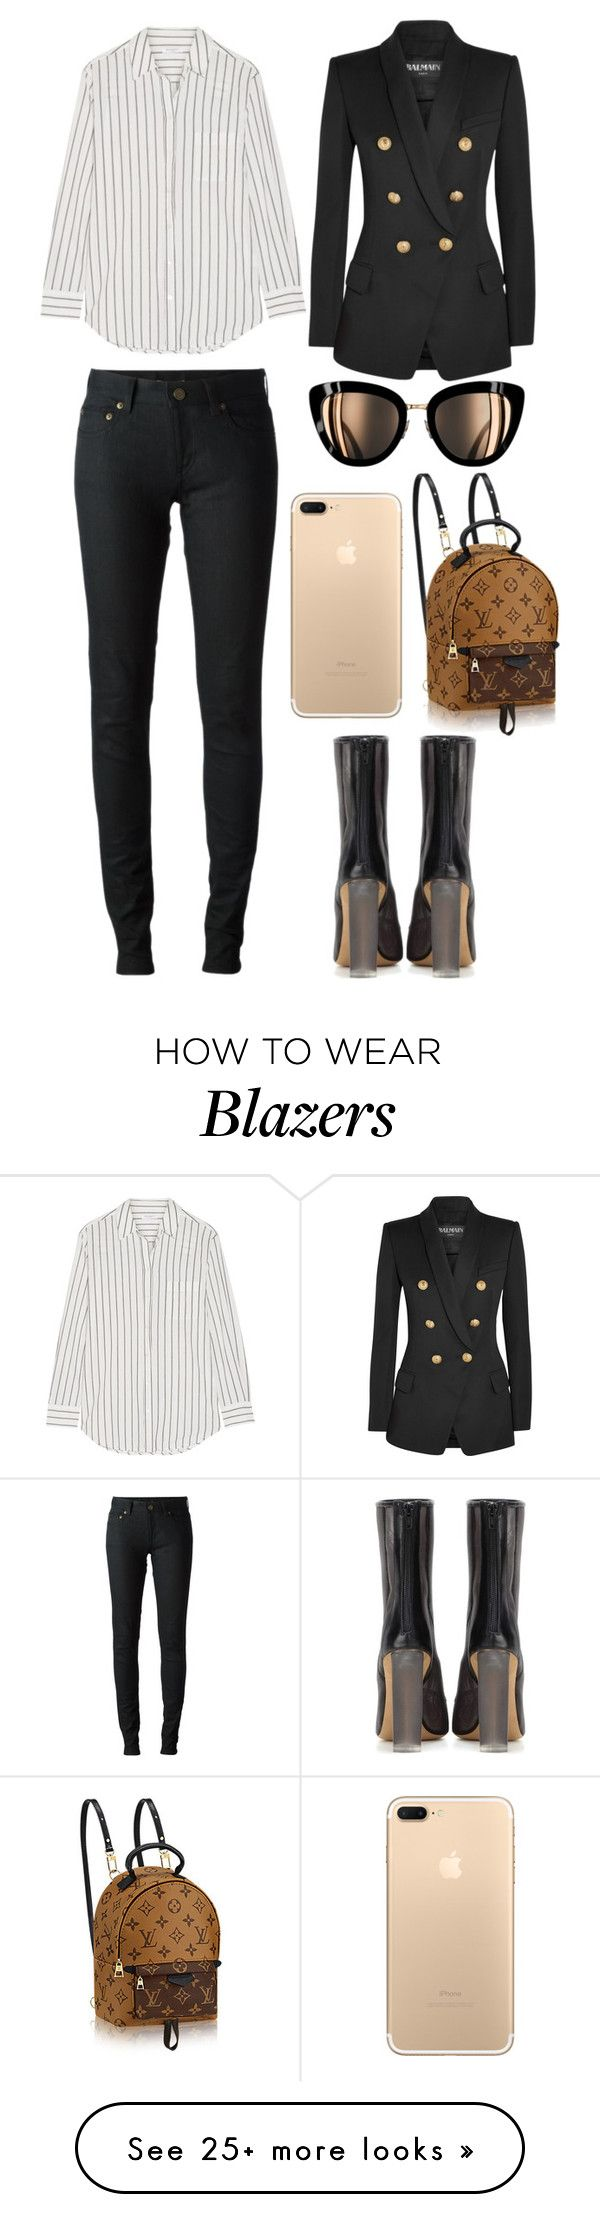 """Untitled #3789"" by fashionhypedaily on Polyvore featuring Yves Saint Laurent, Equipment, Balmain and adidas Originals"